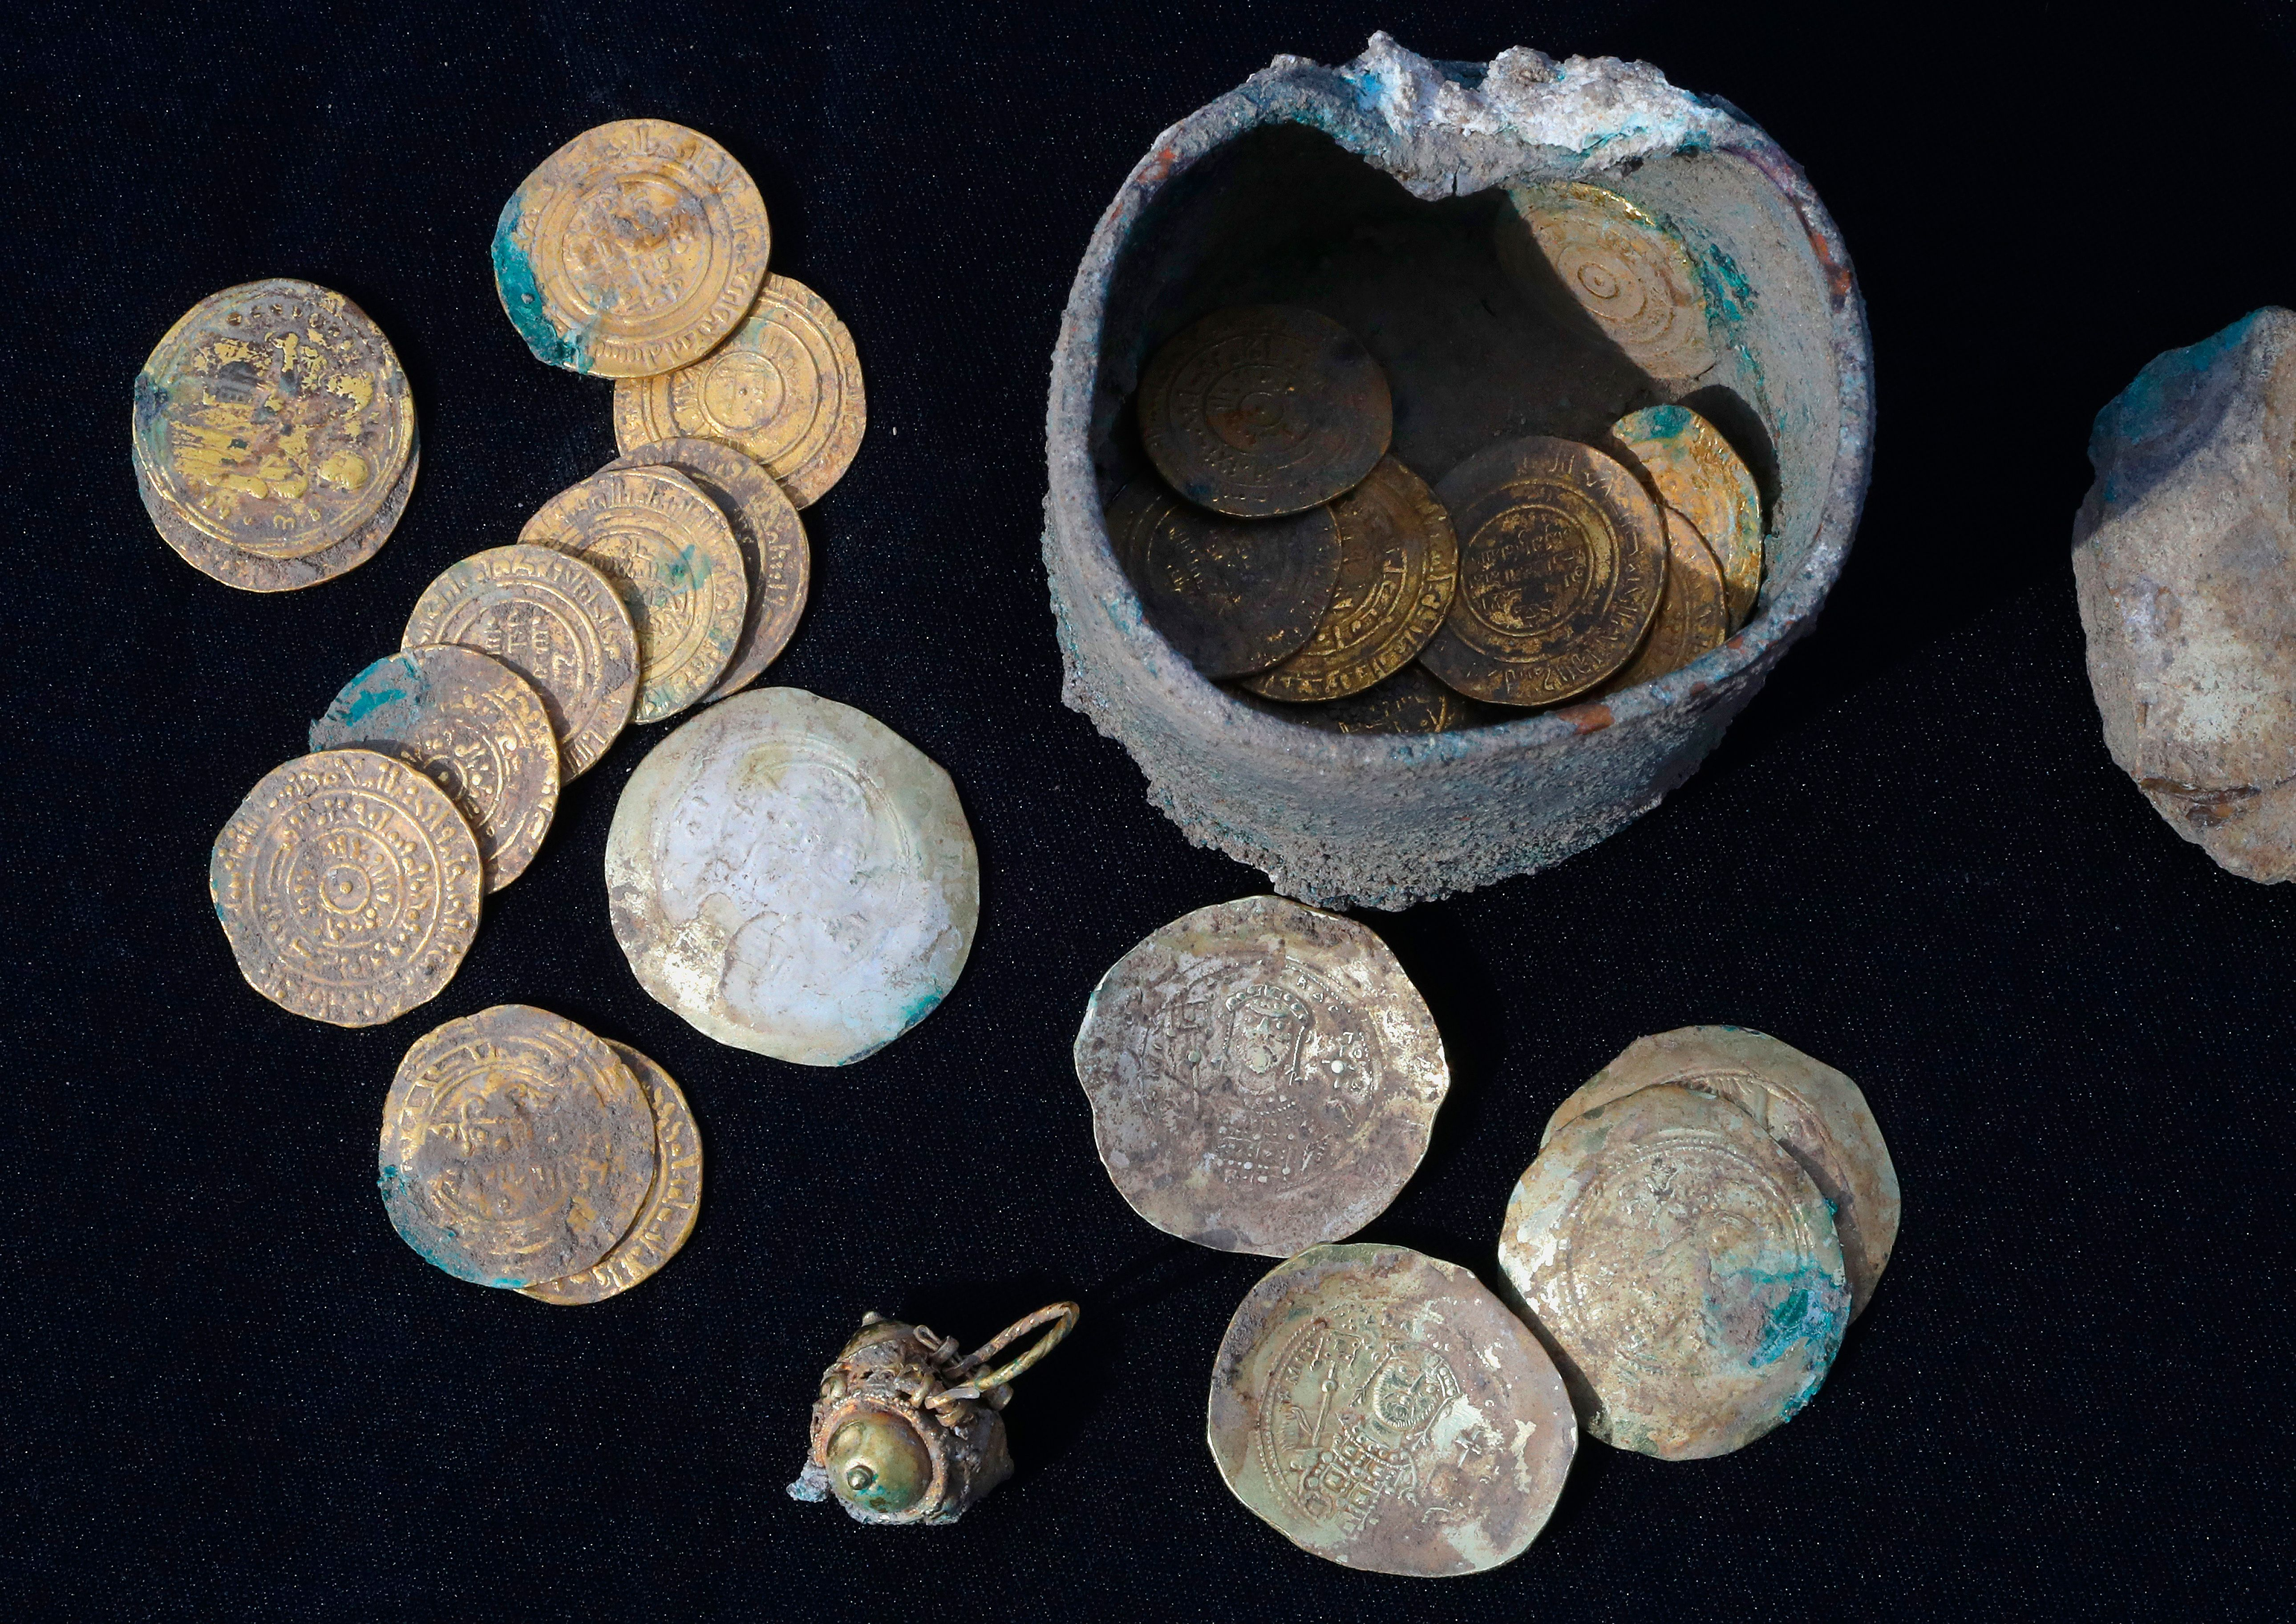 israel coin found from crusades